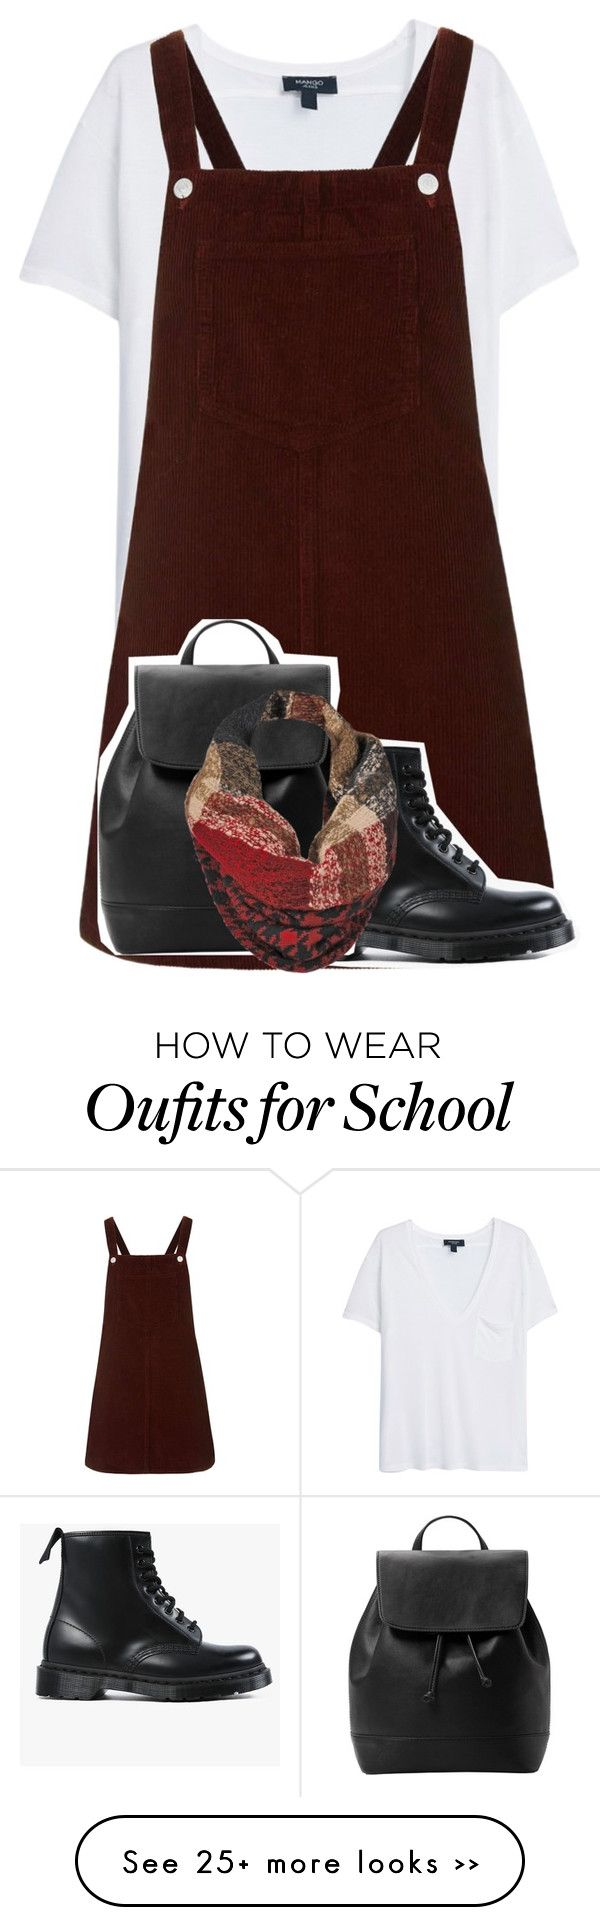 """""""Fall School Girl"""" by macbautybabe07 on Polyvore featuring MANGO, Topshop, Dr. Martens and Black Rivet"""